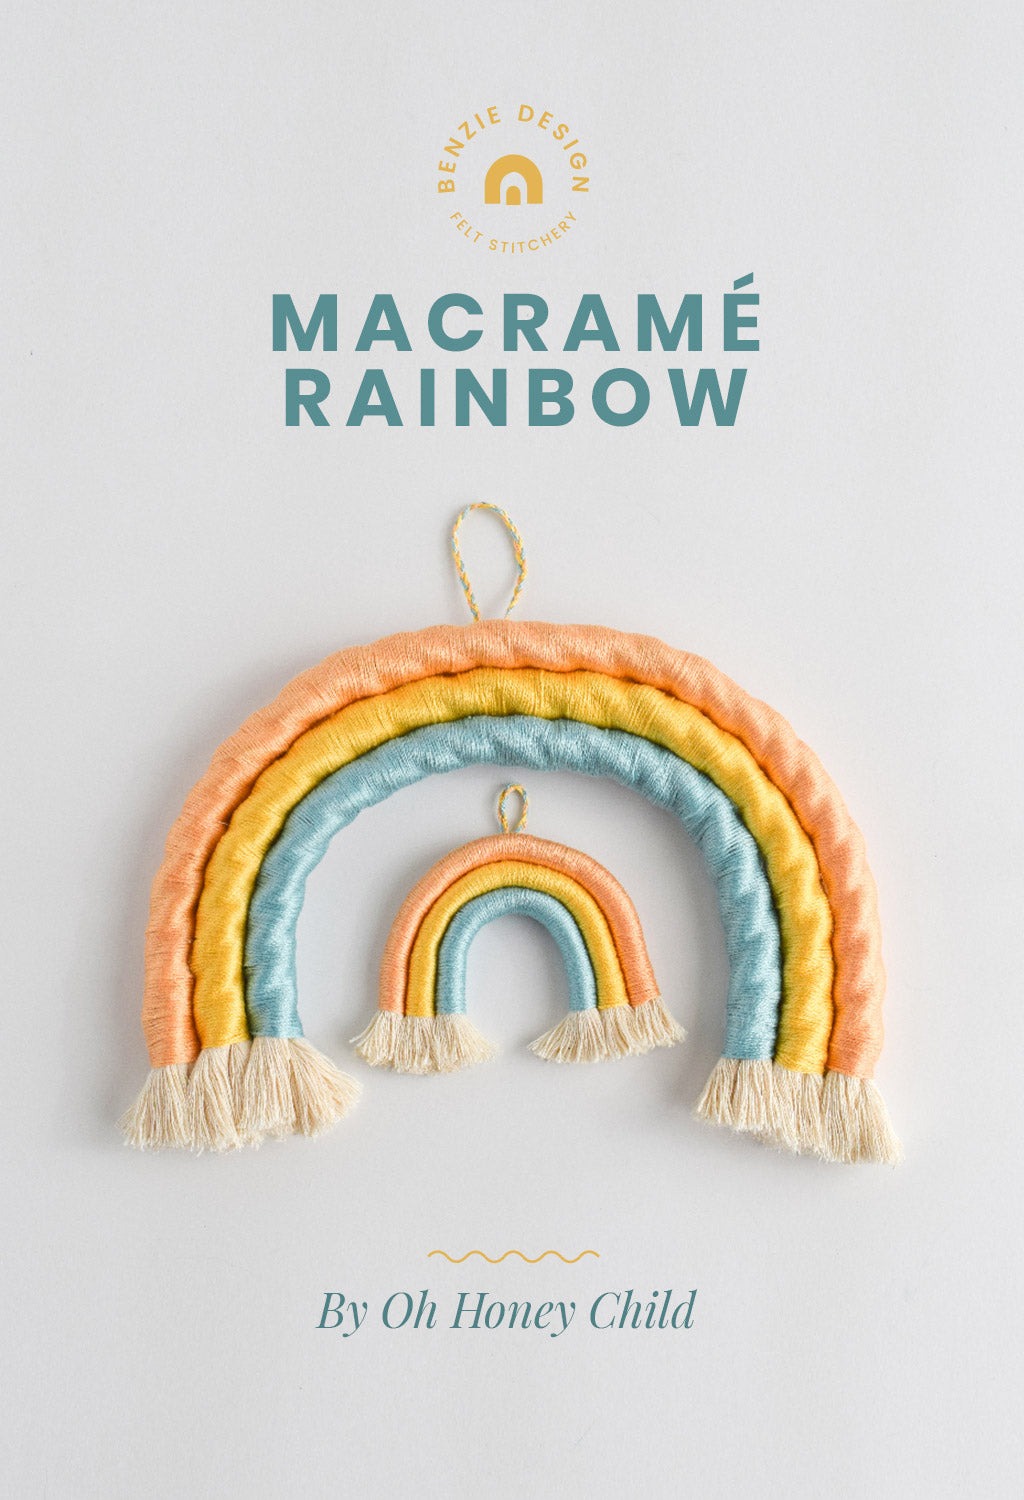 Rainbow Macrame Craft